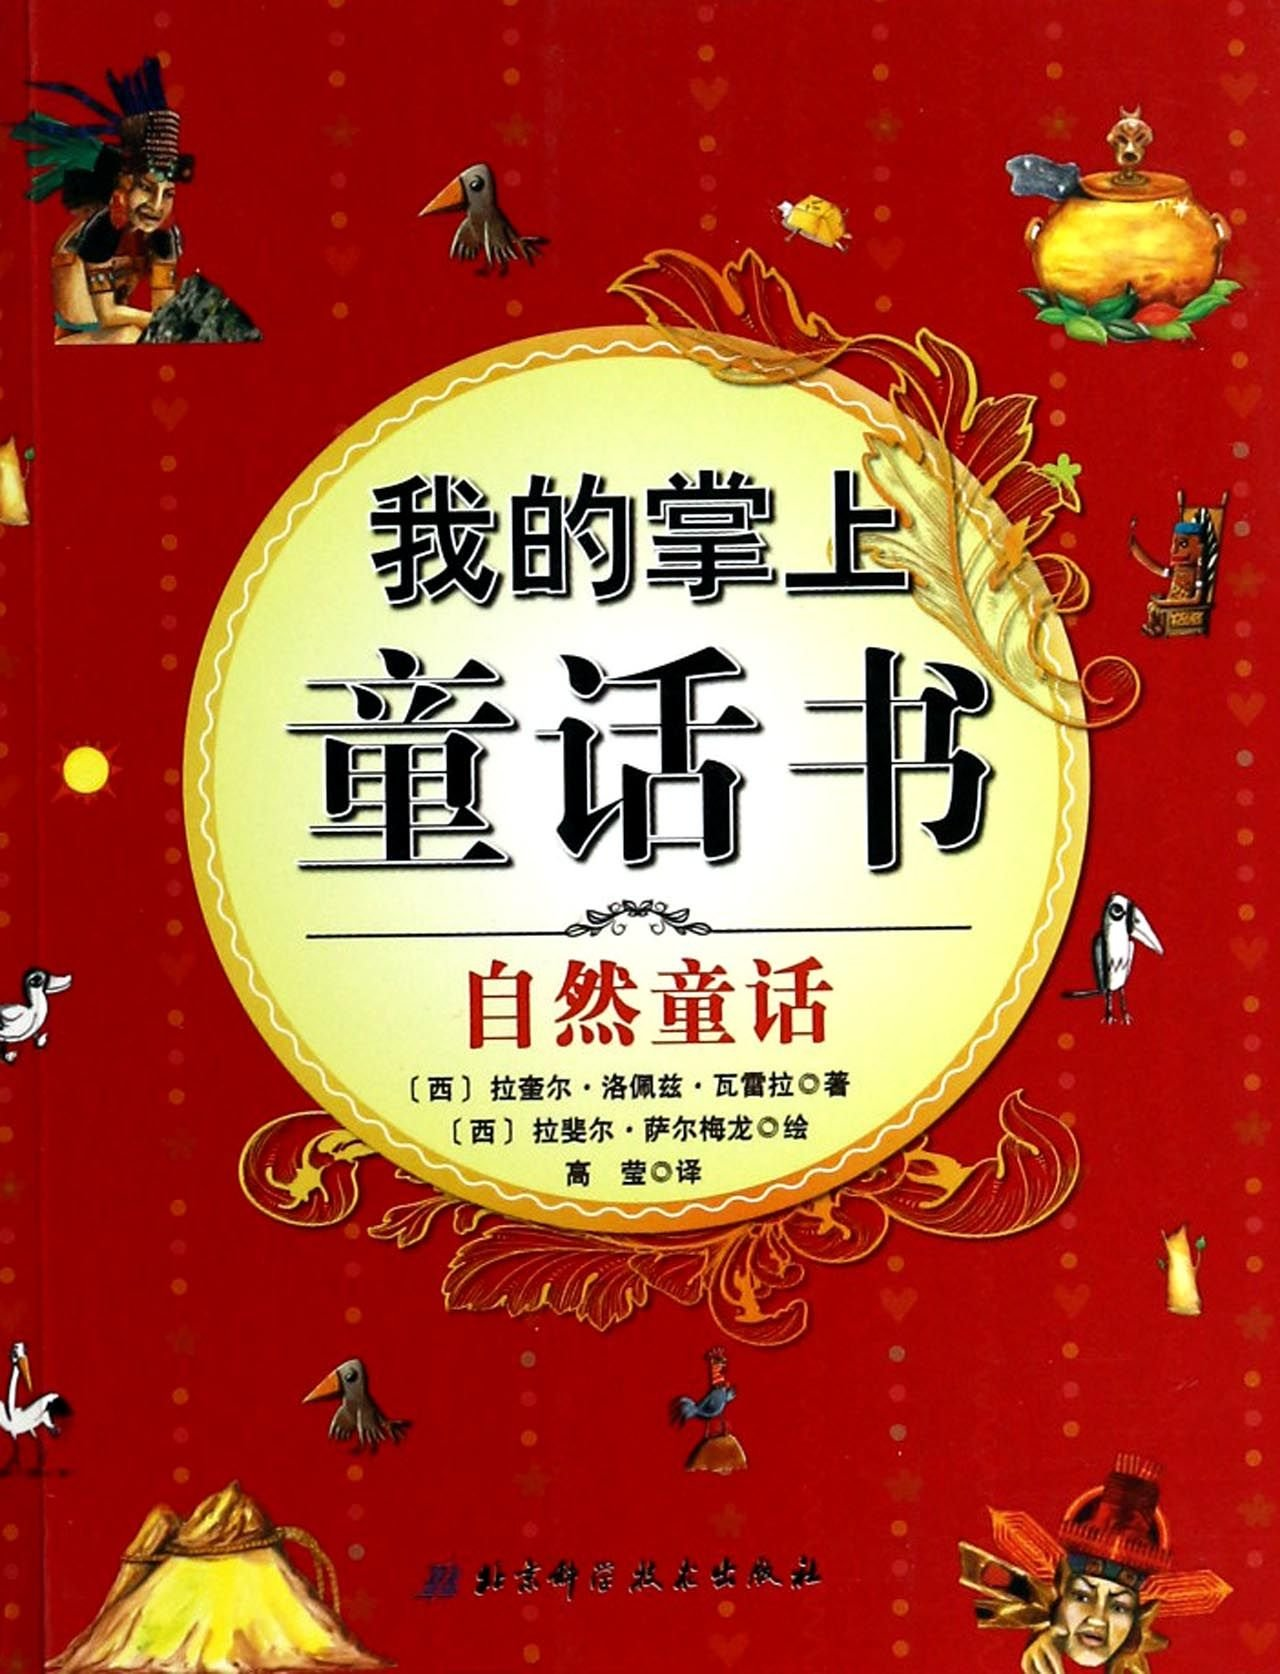 My Pocket book of fairy tales: Nature fairy(Chinese Edition) ebook